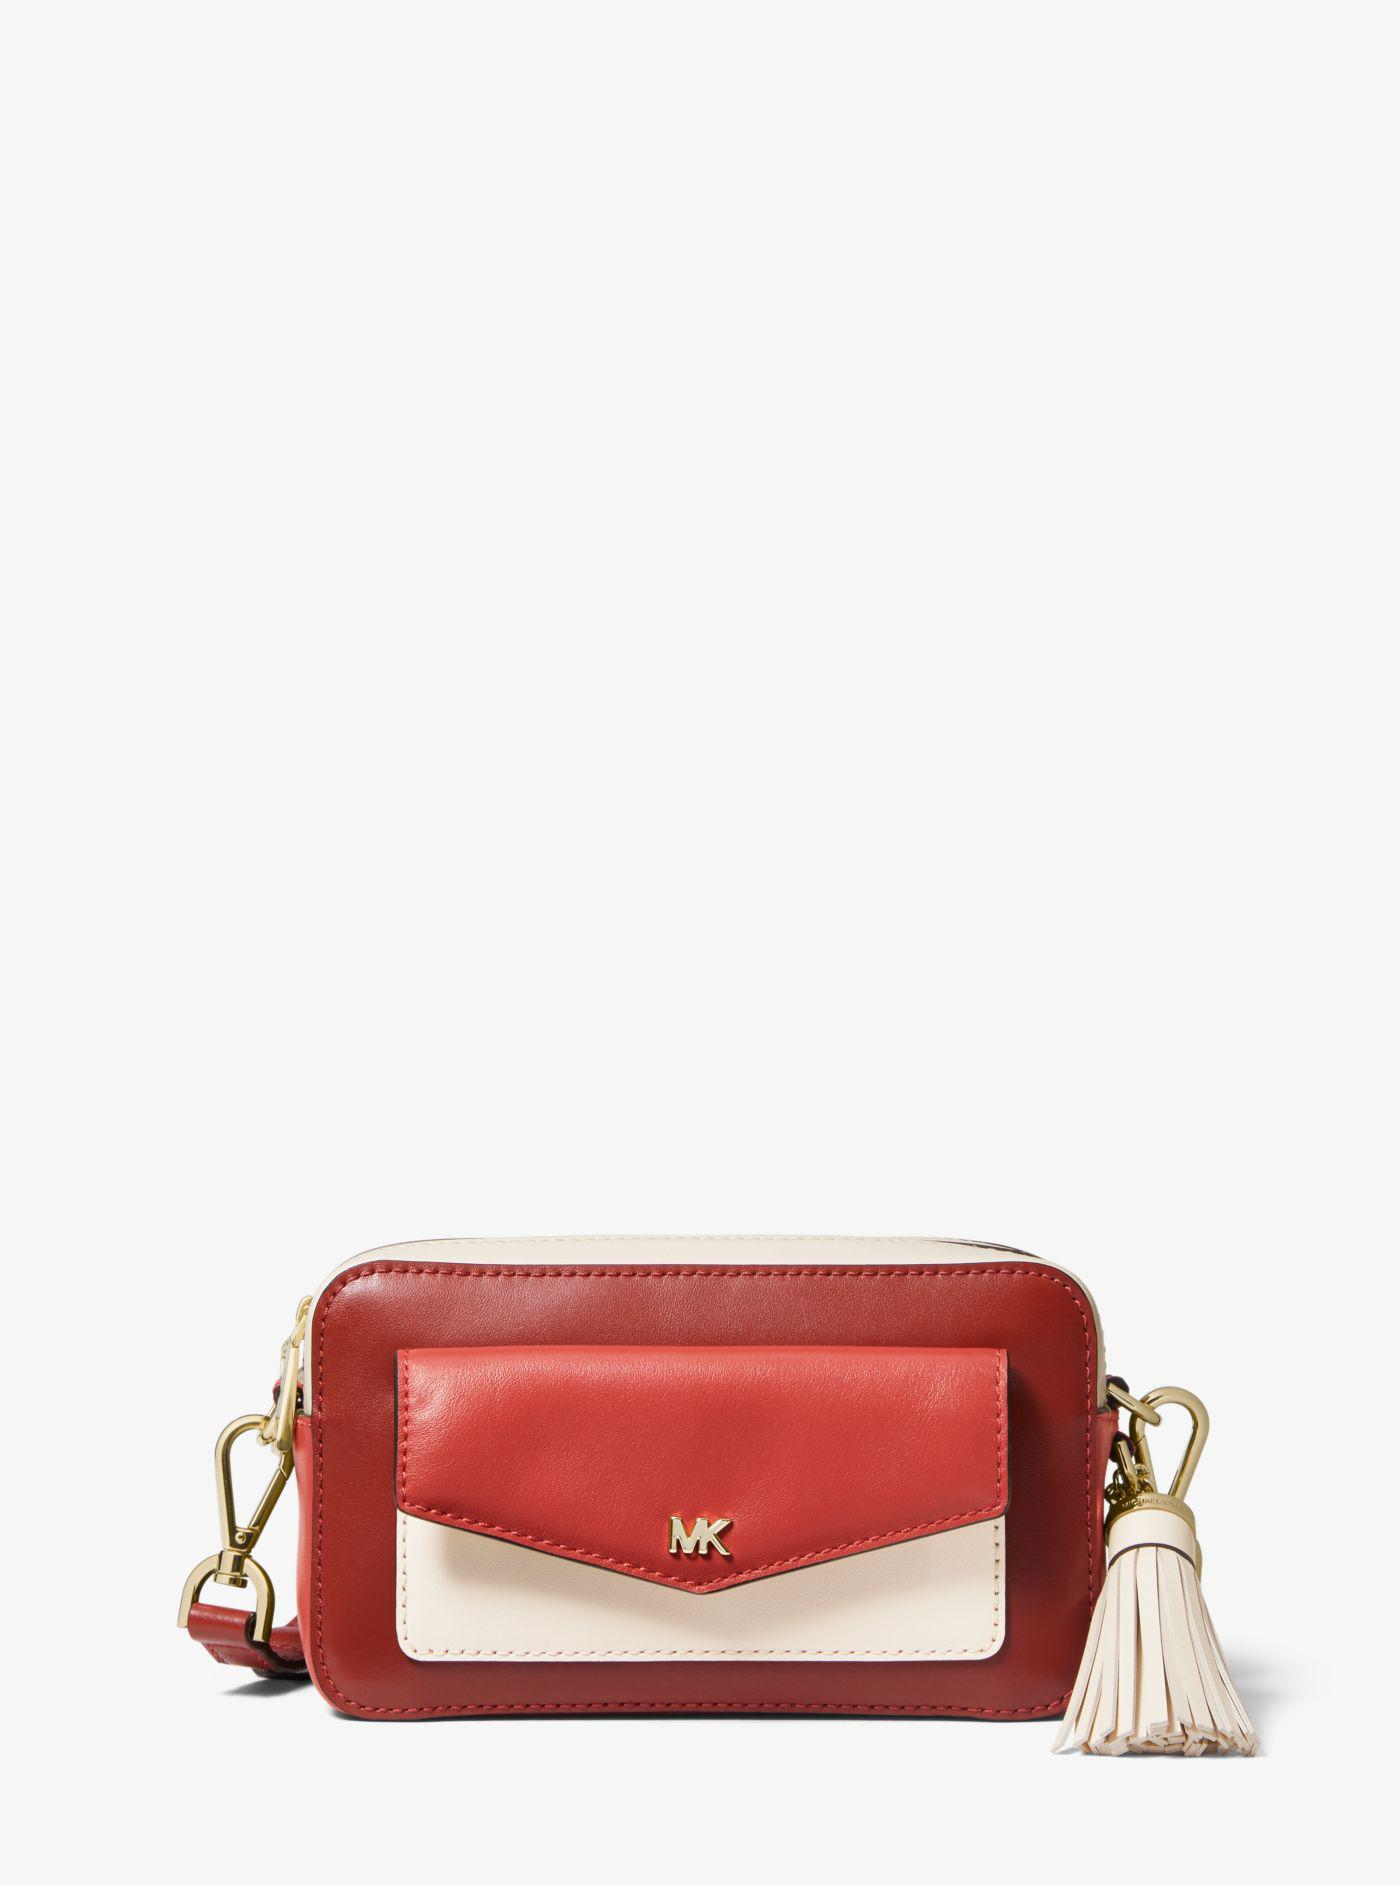 745fc6eeaa1b Michael Kors. Women s Small Tri-color Leather Camera Bag